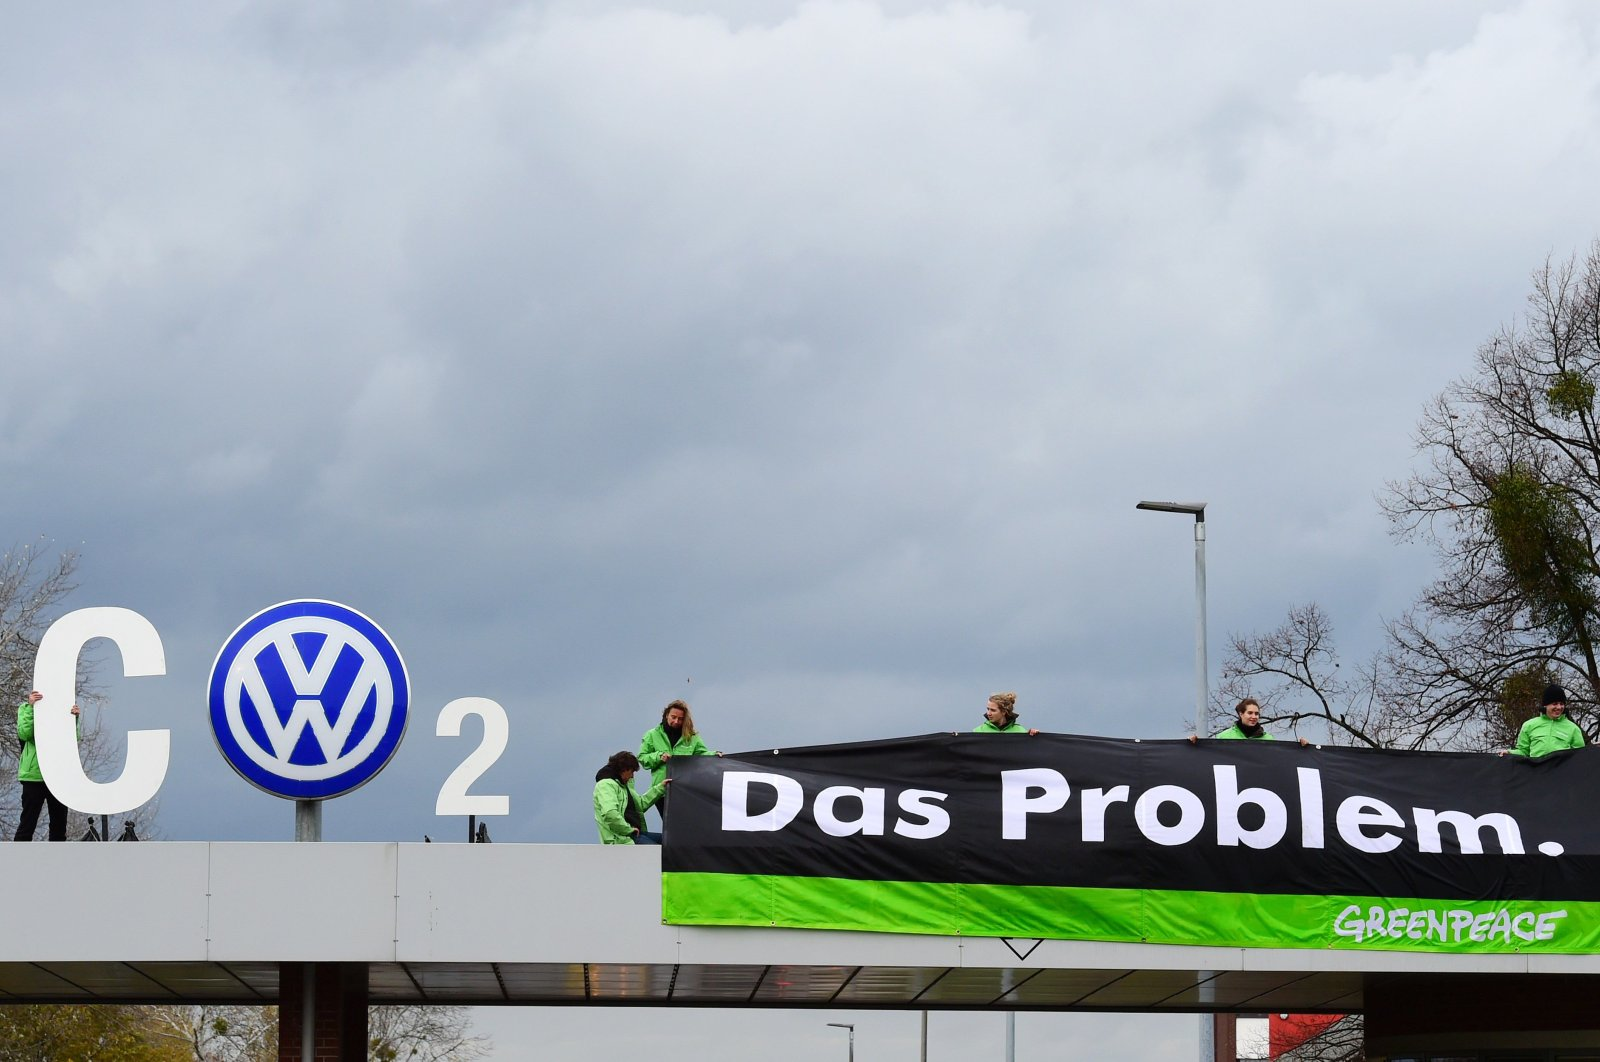 Greenpeace activists demonstrate at the entrance to the Volkswagen plant in Wolfsburg, central Germany, Nov. 9, 2015. (AFP Photo)